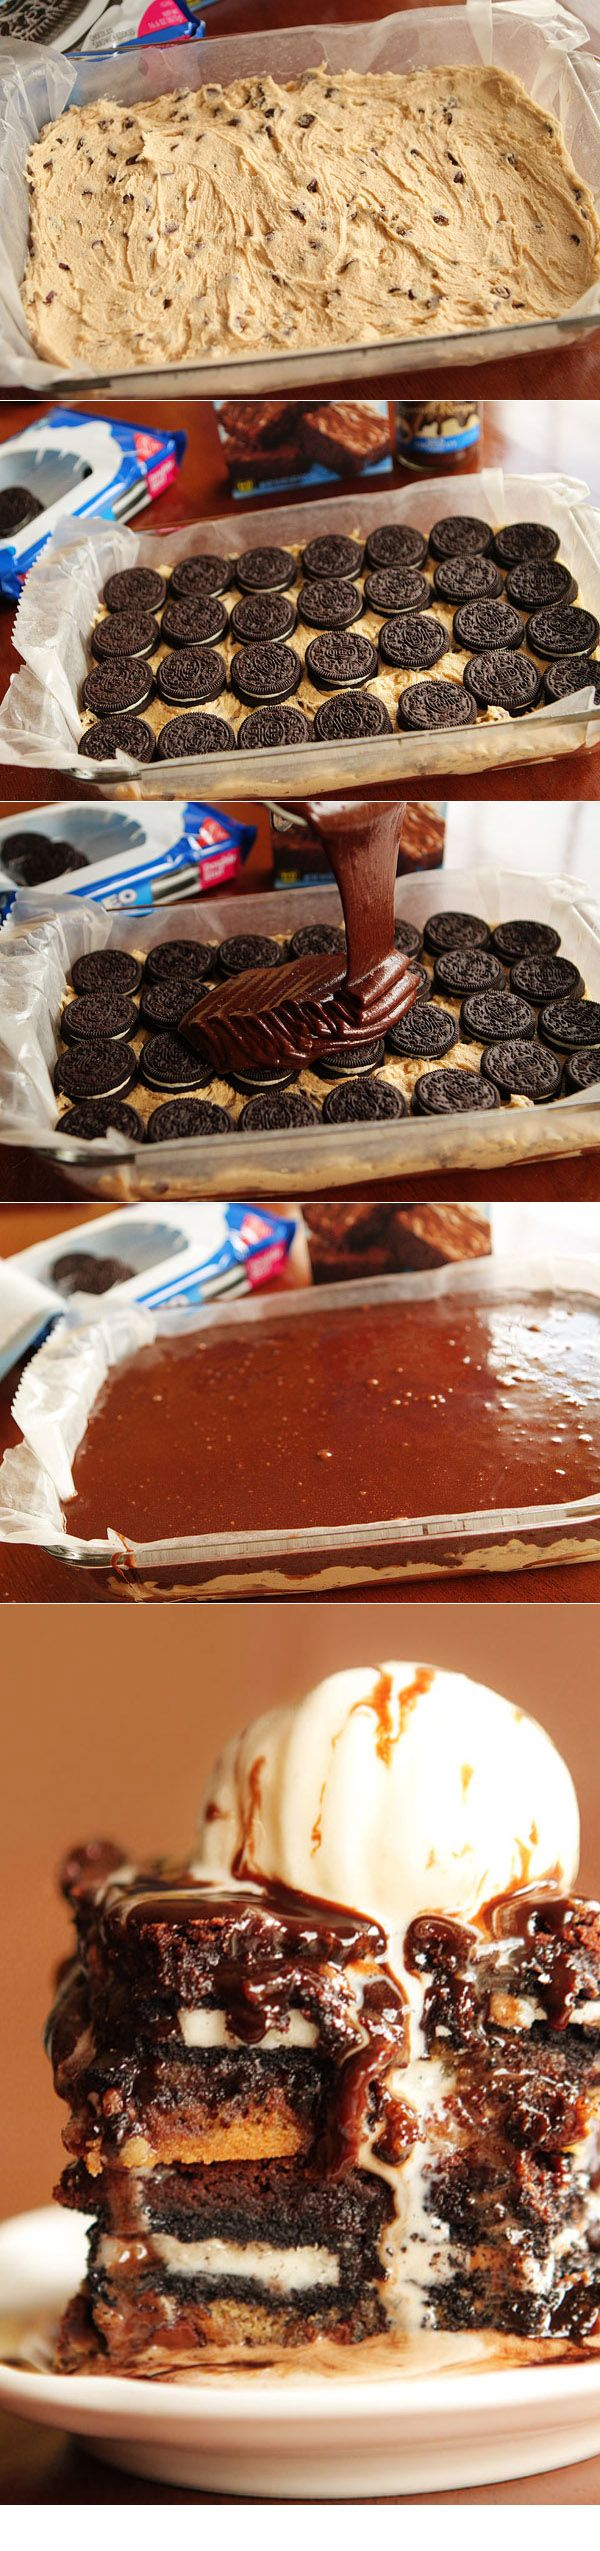 Ultimate Chocolate Chip Cookie n' Oreo Fudge Brownie recipe - Layer cookie dough, Oreo cookies, and brownie batter for one ridiculously fabulous dessert!